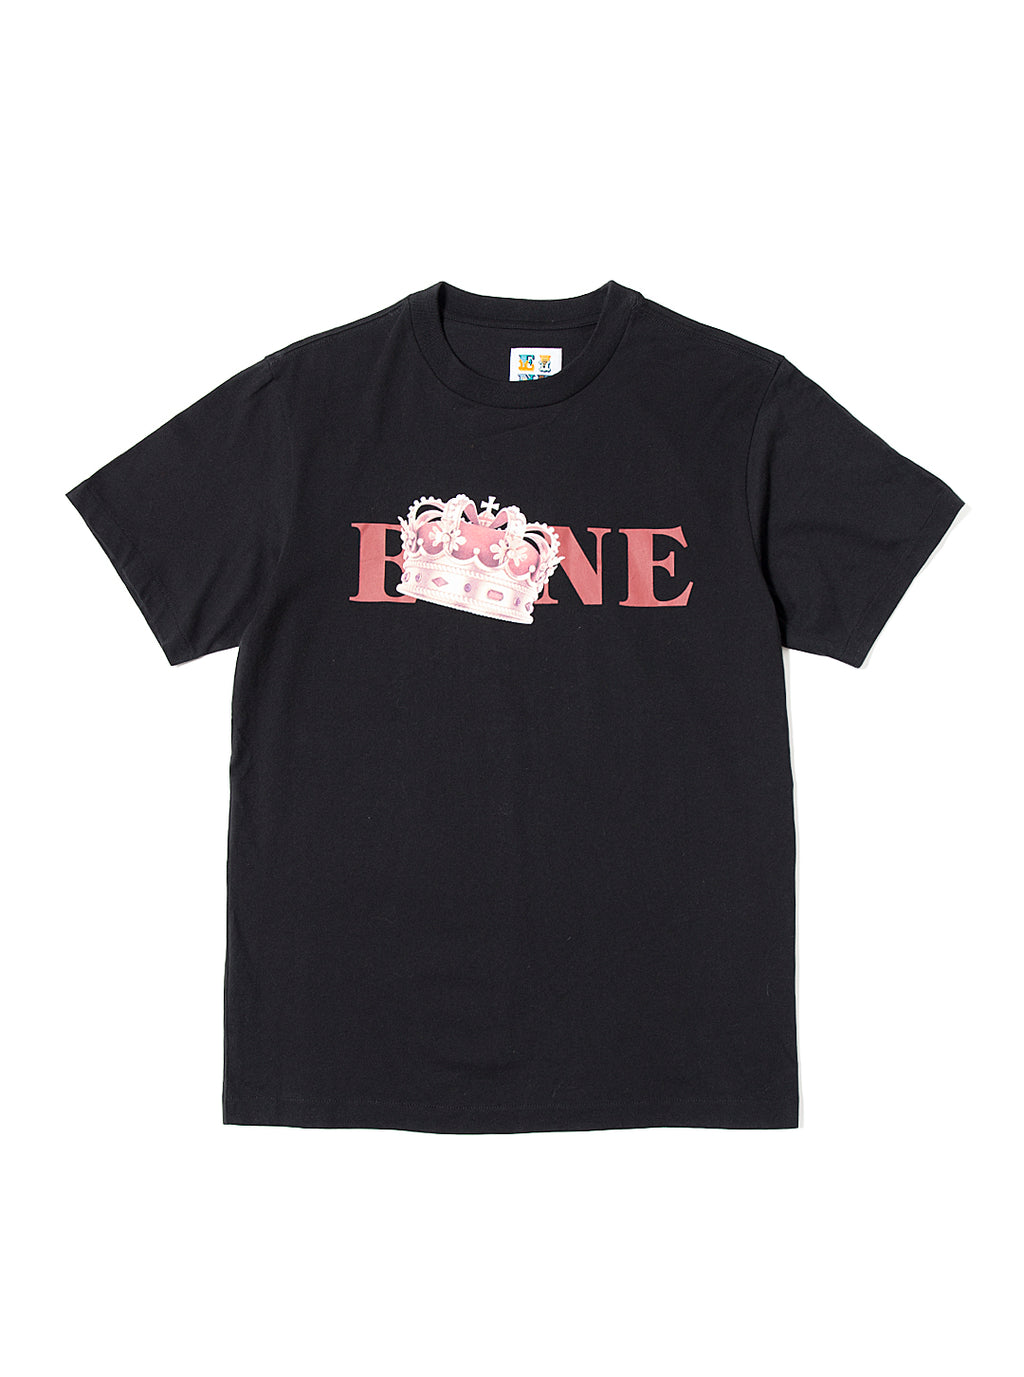 EINE Crown S/S T-Shirt - Black Sample